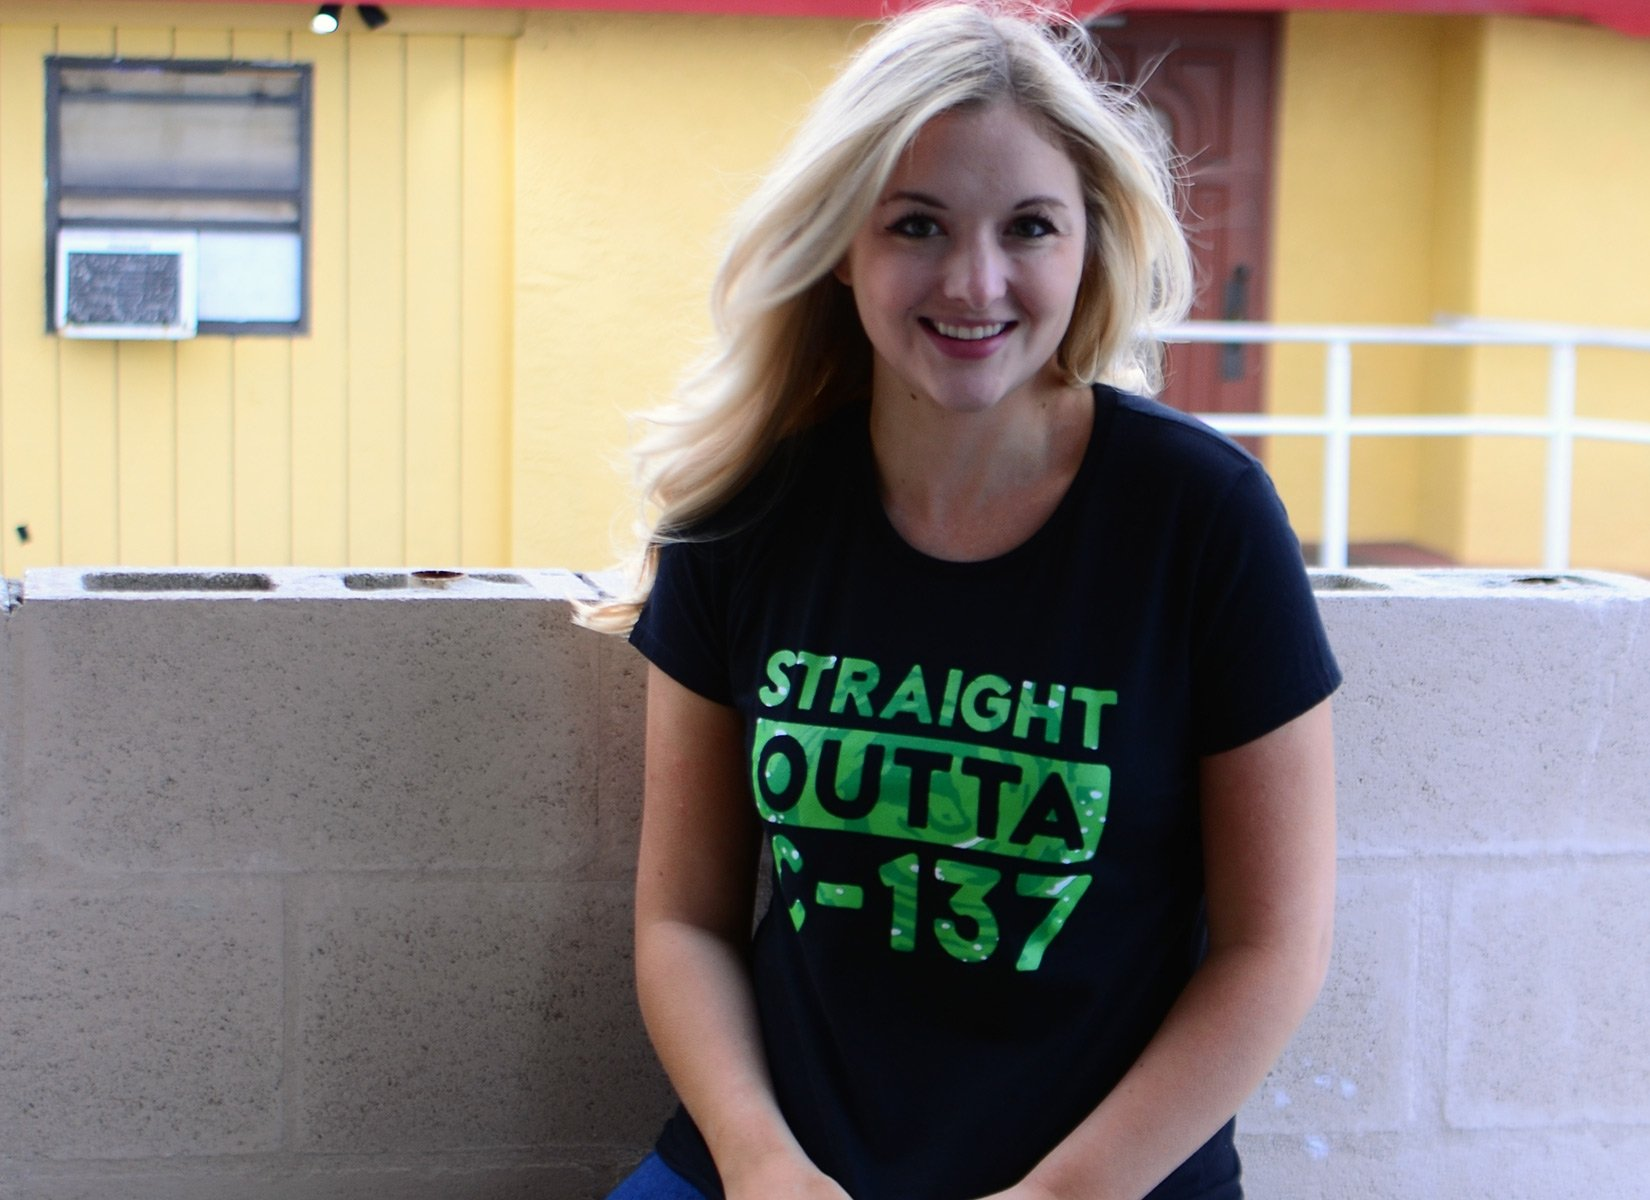 Straight Outta C-137 on Womens T-Shirt